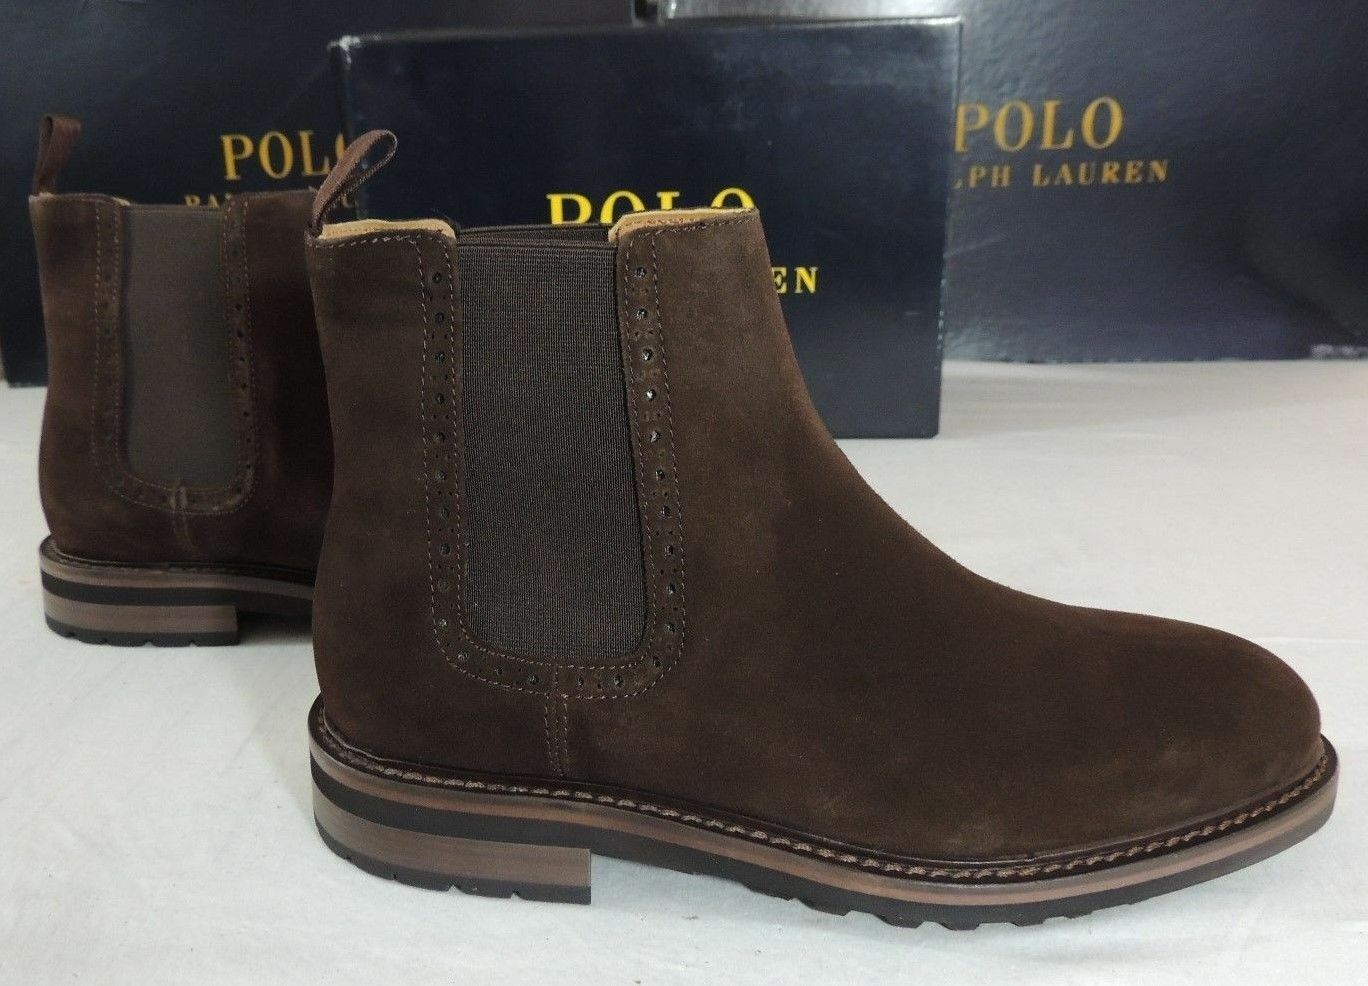 395 Polo Ralph Lauren Adley Dark Brown Suede Leather Pull Up Boots shoes 7 D 6